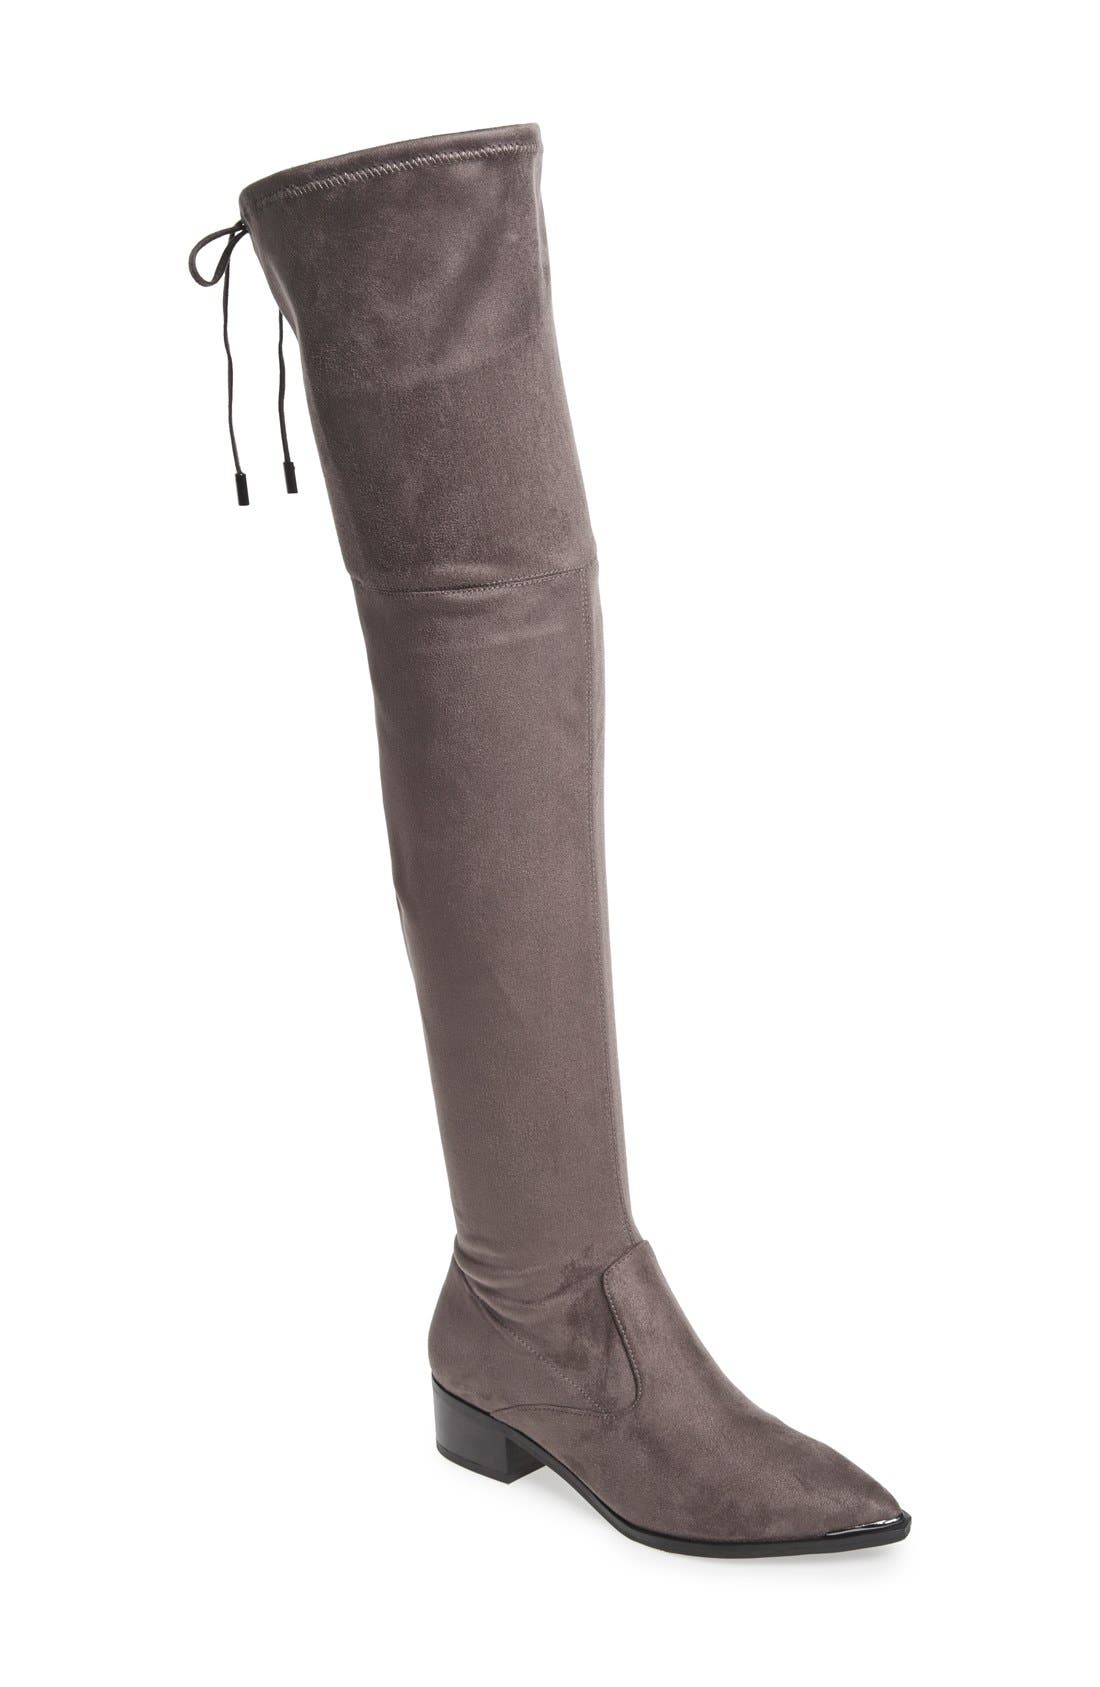 Alternate Image 1 Selected - Marc Fisher LTD Yenna Over the Knee Boot (Women)